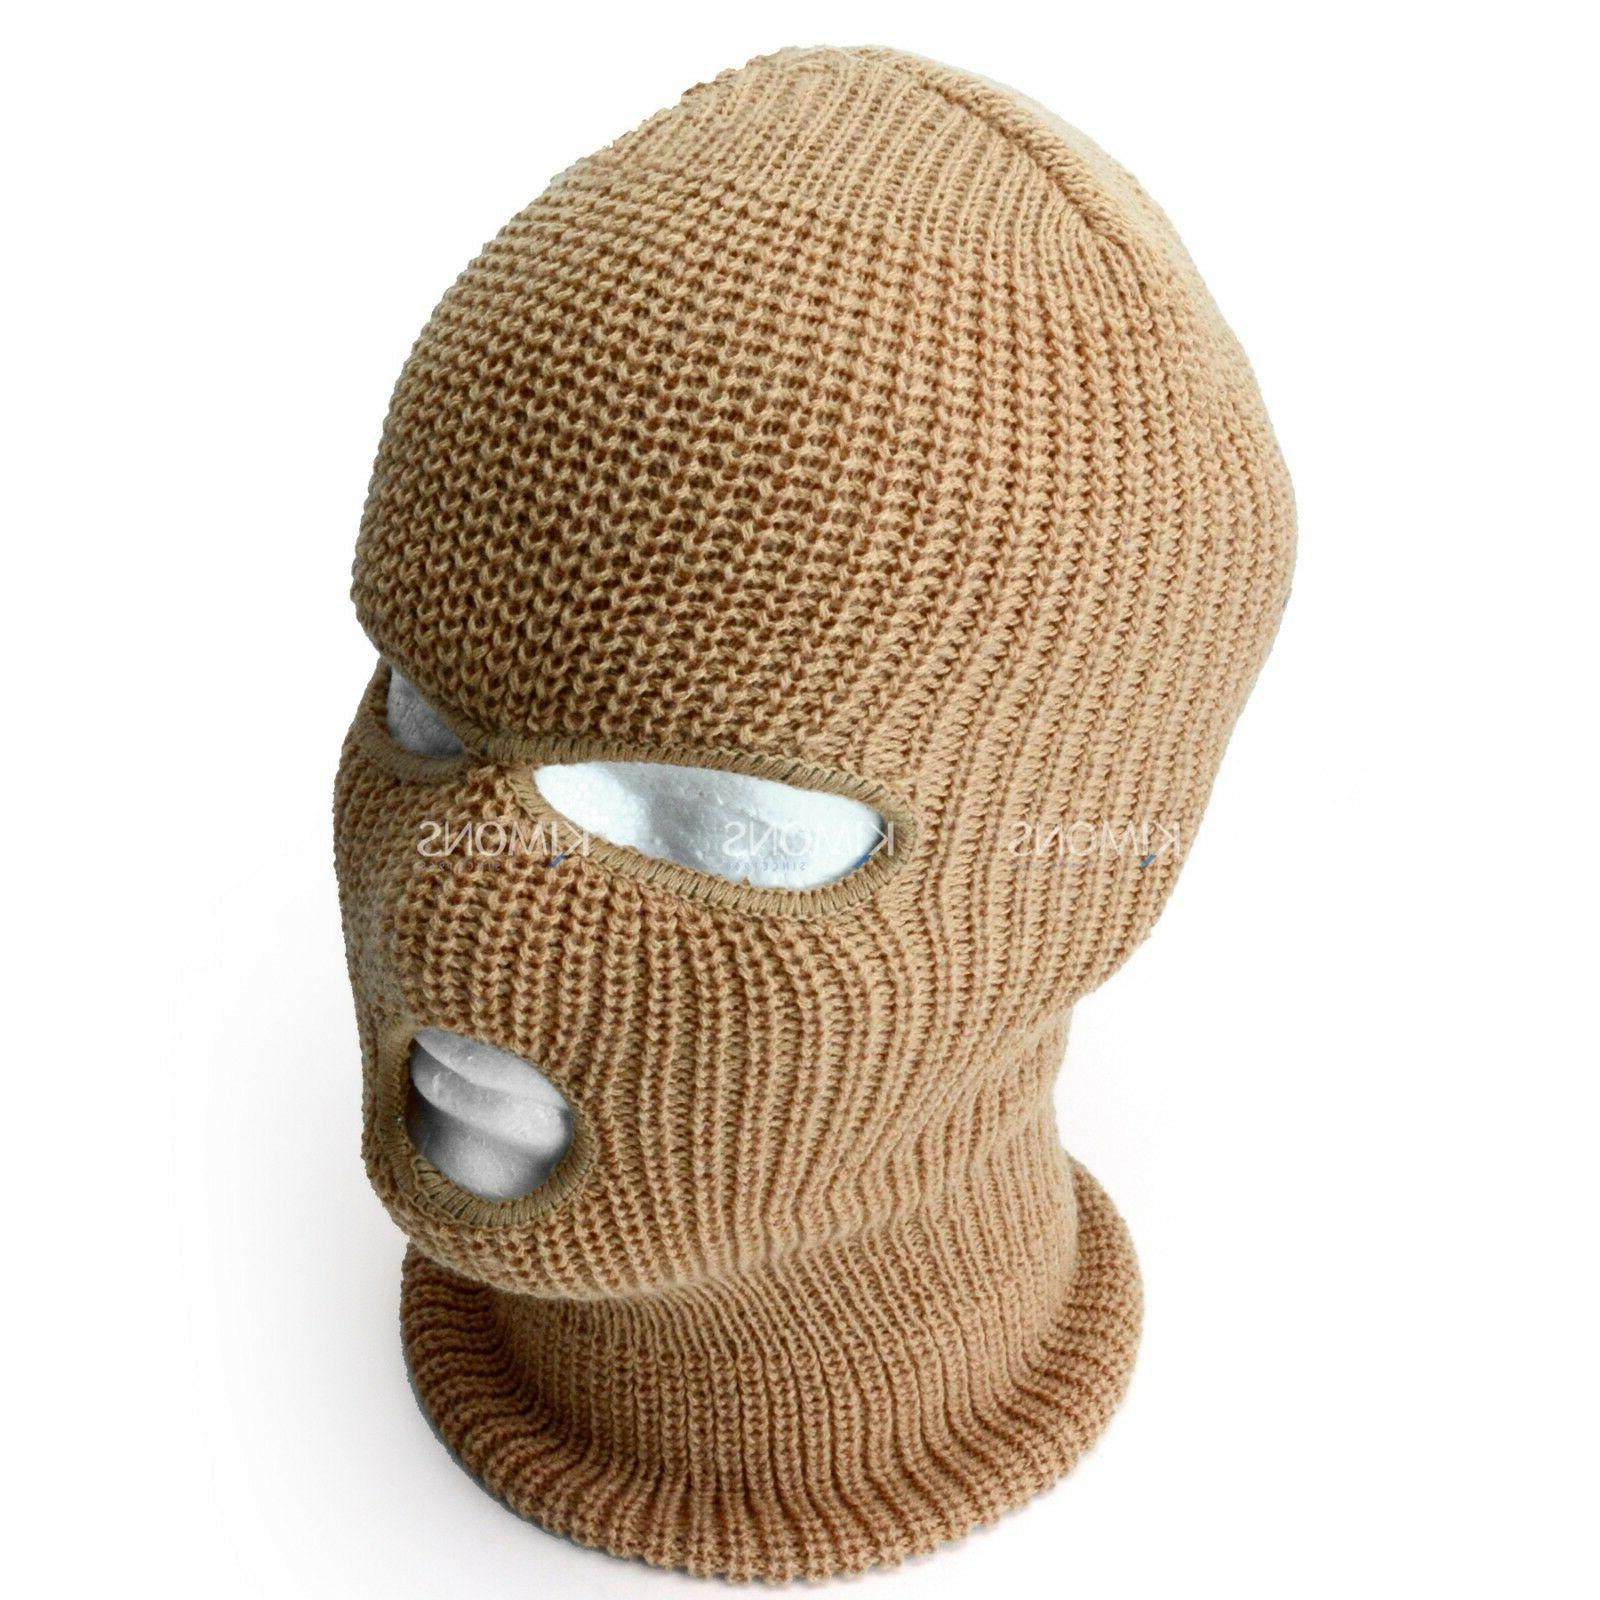 3 Hole Mask Tactical Hat